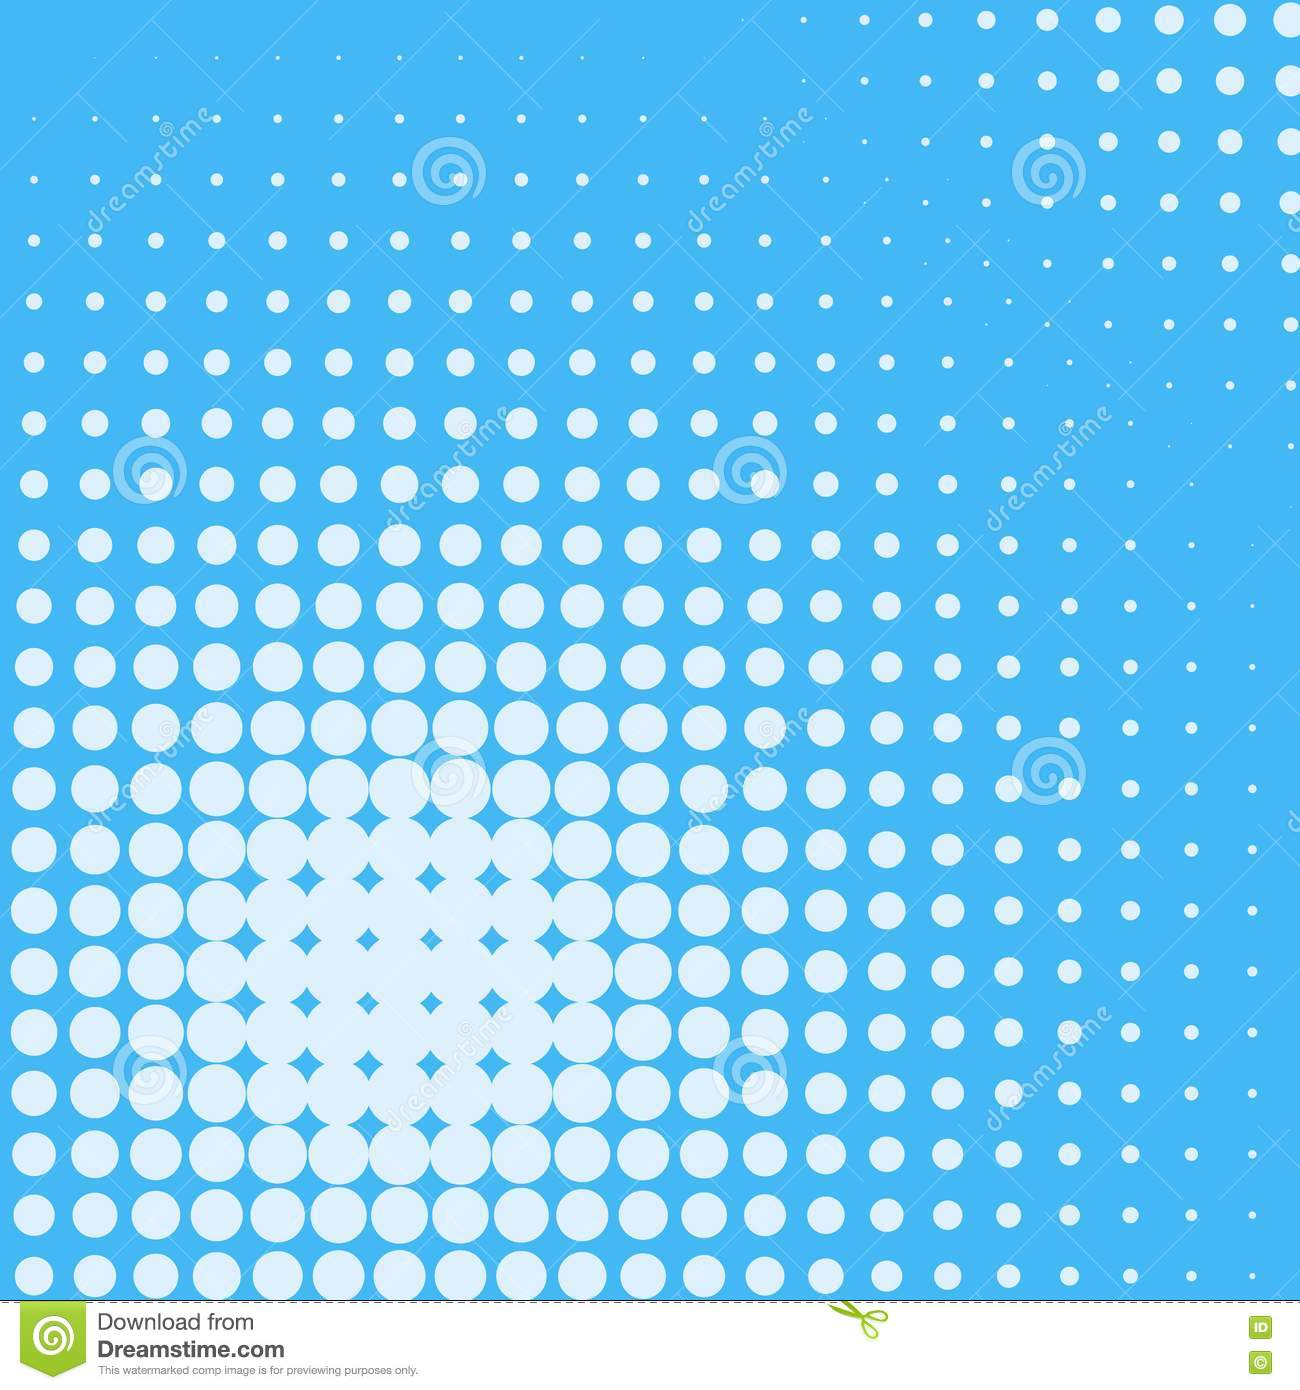 Abstract creative concept comics pop art style blank layout template with clouds beams and isolated dots pattern on backgro